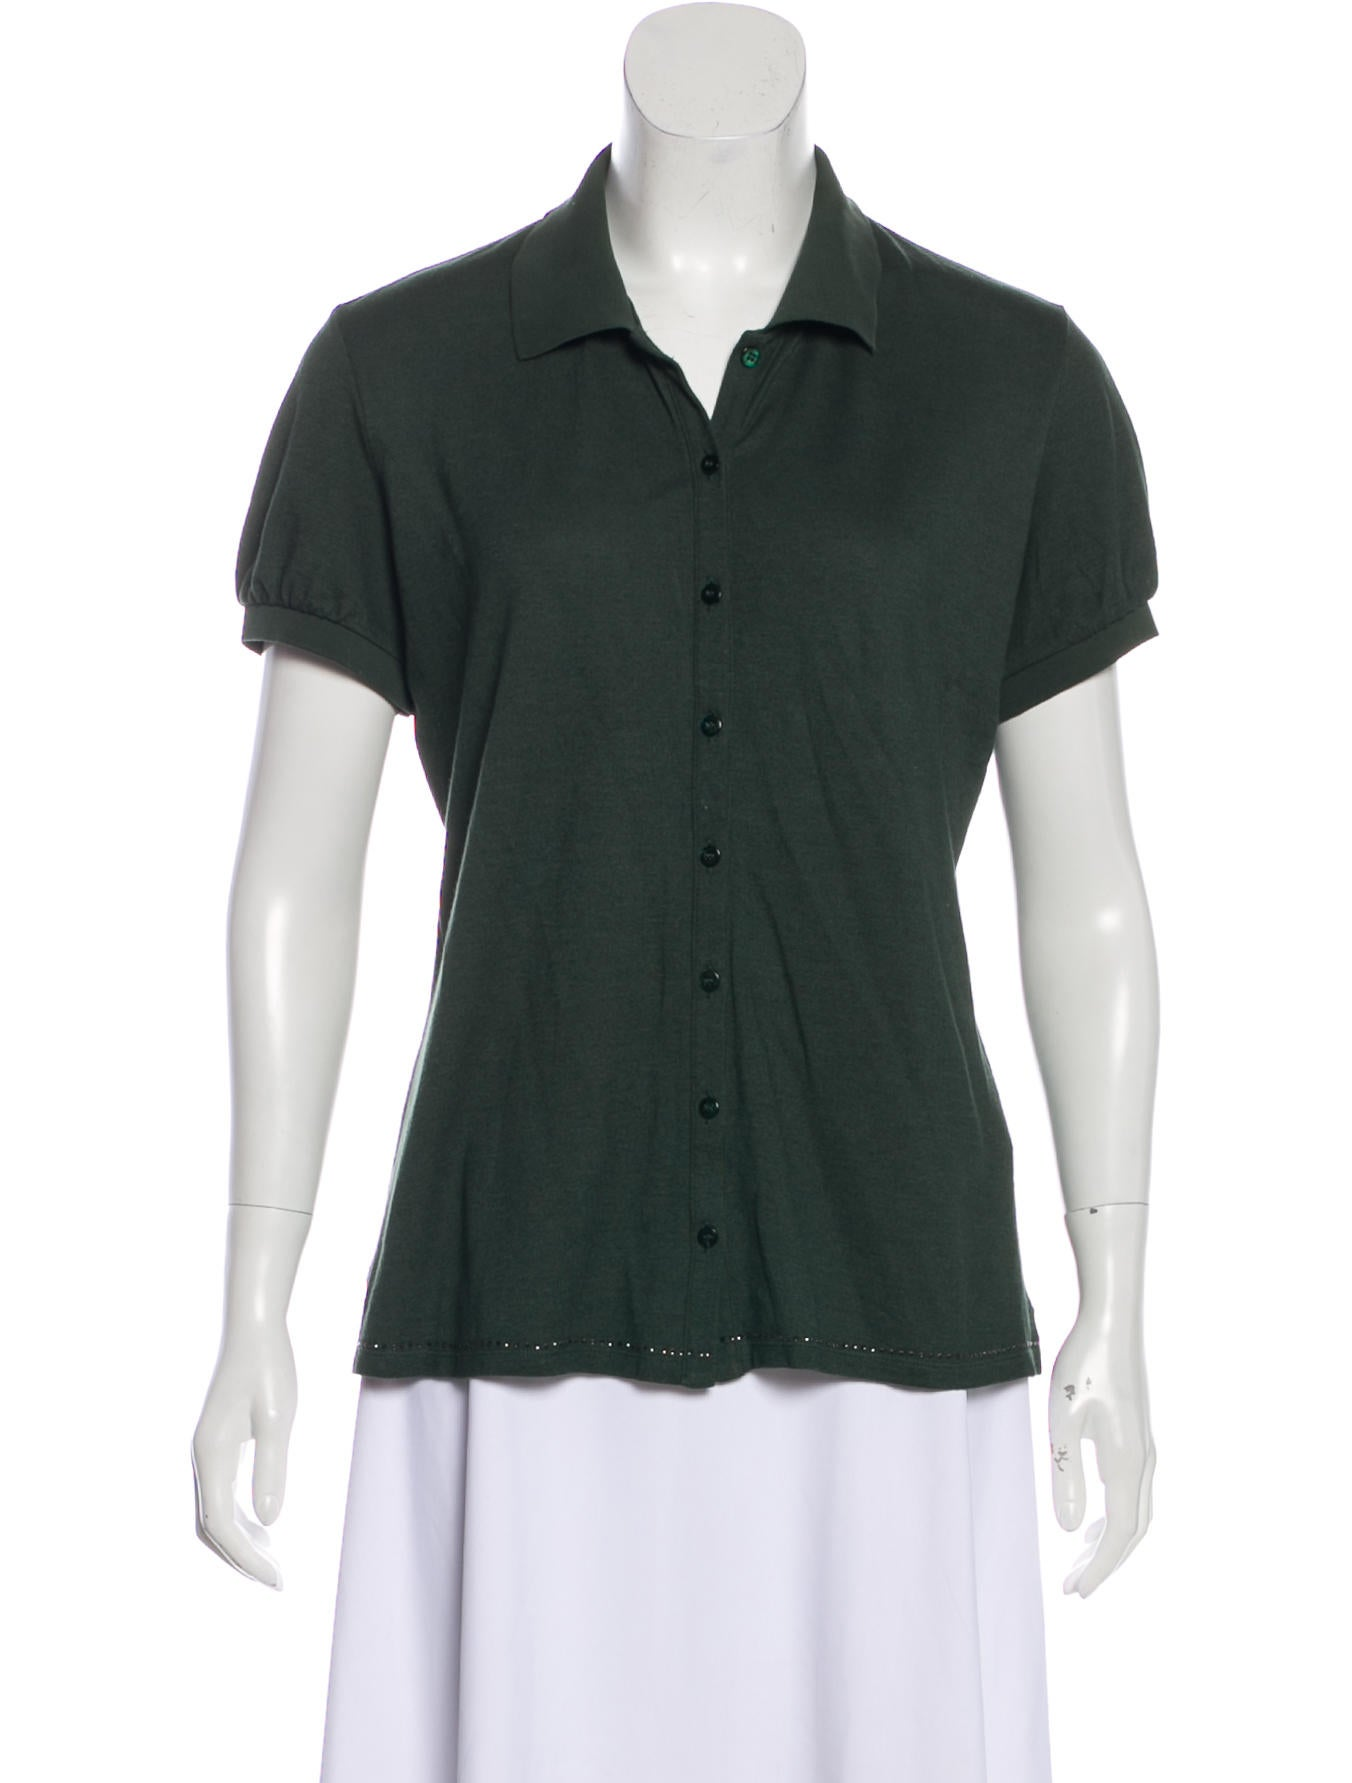 S Maxmara Button Up Short Sleeve Top